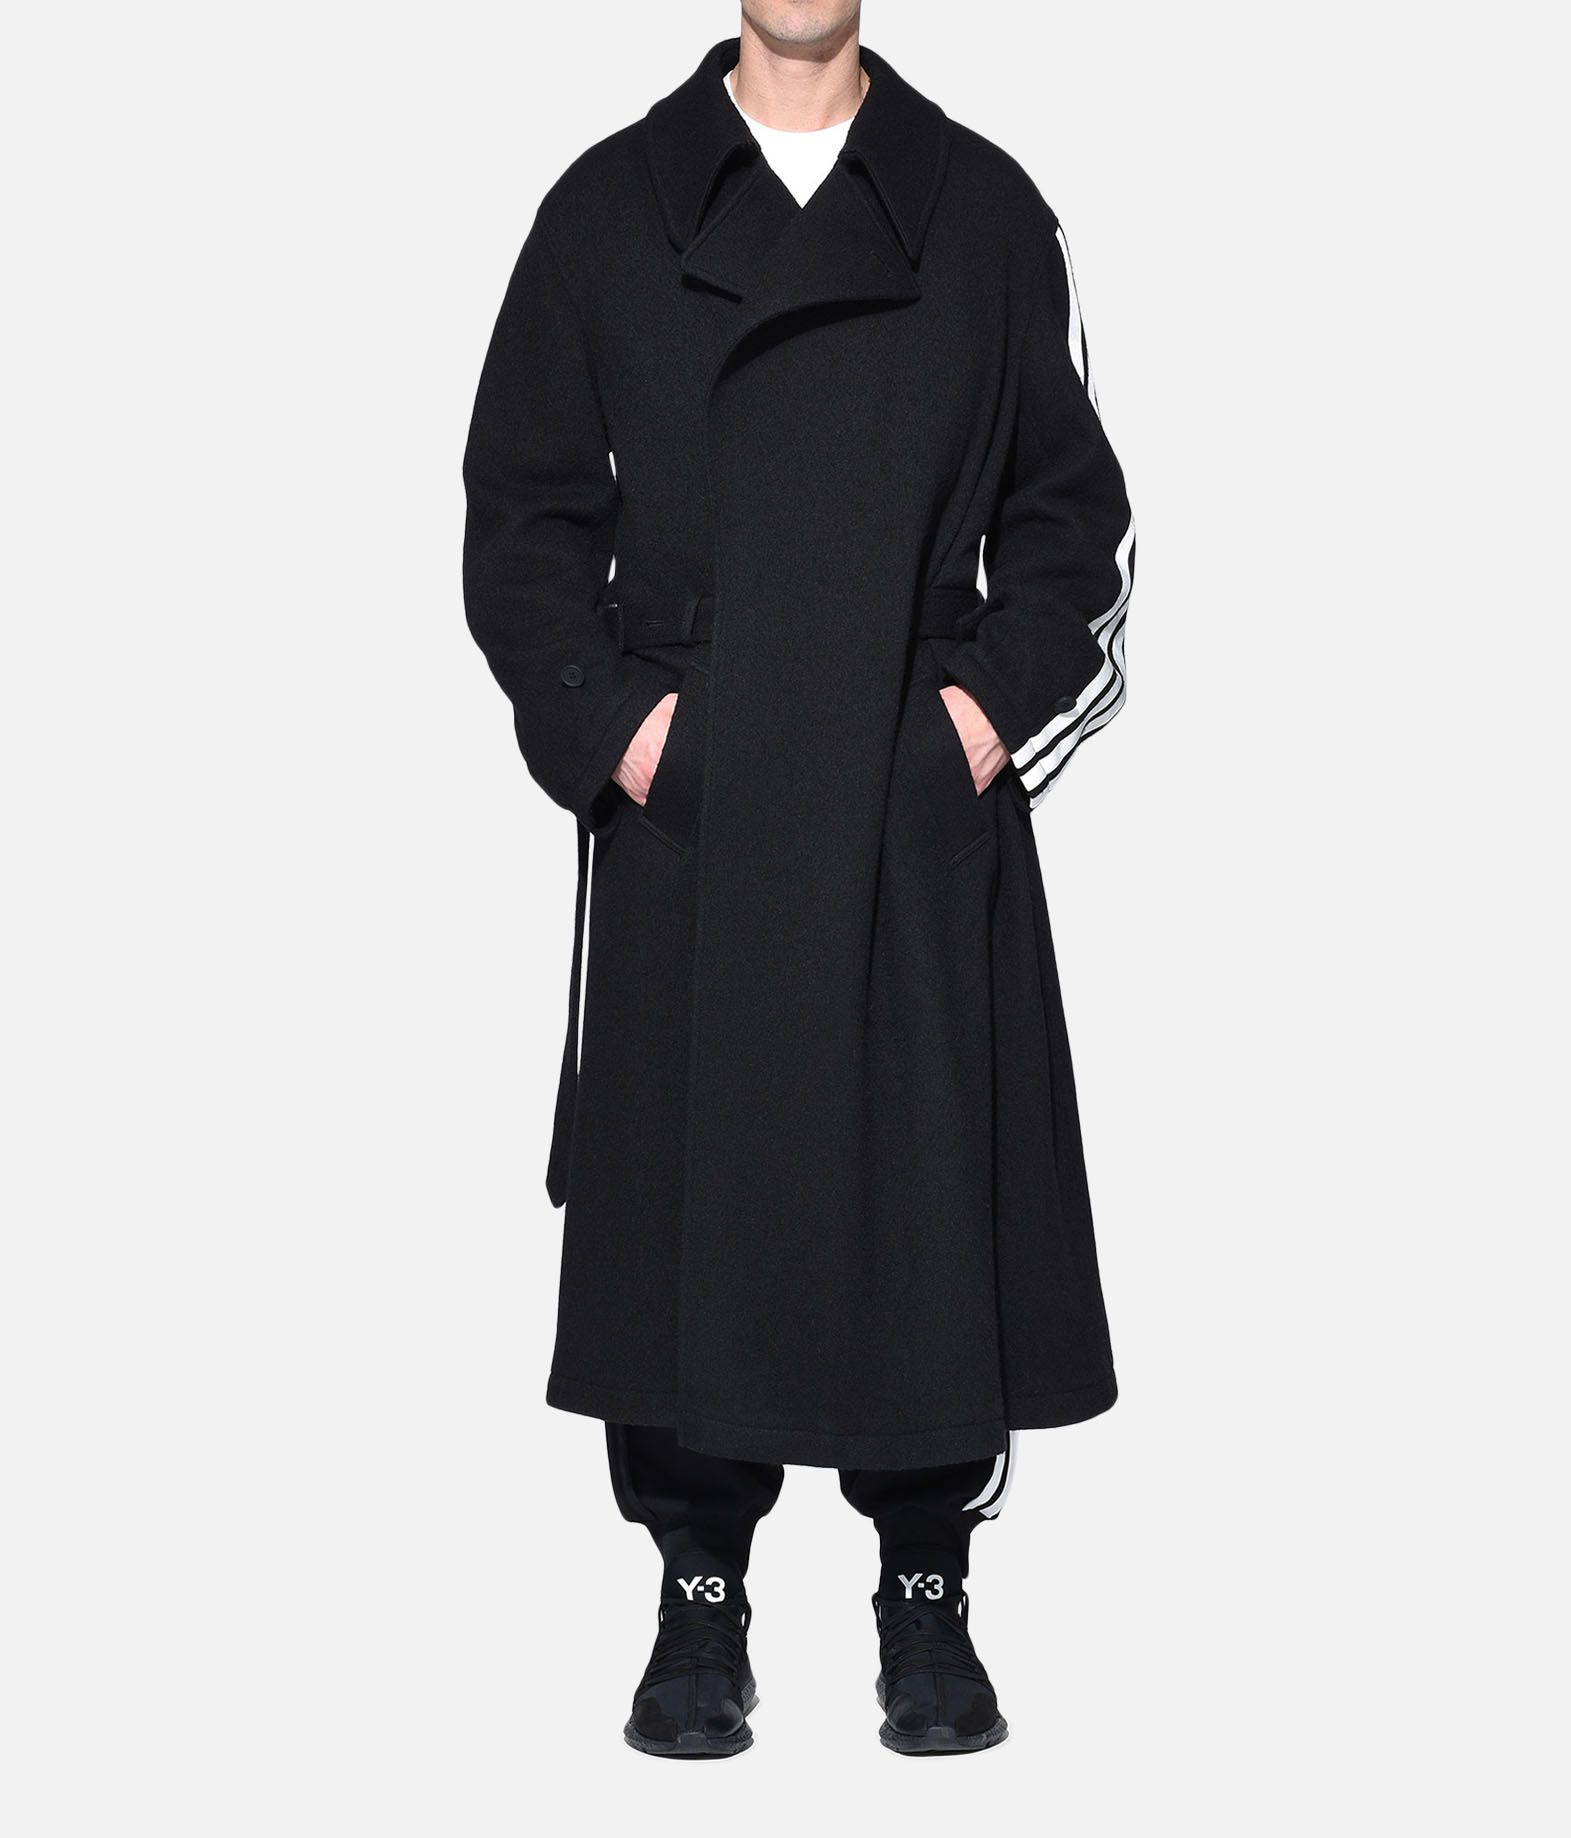 Y-3 Y-3 Tailored Wool Coat Coat Man r